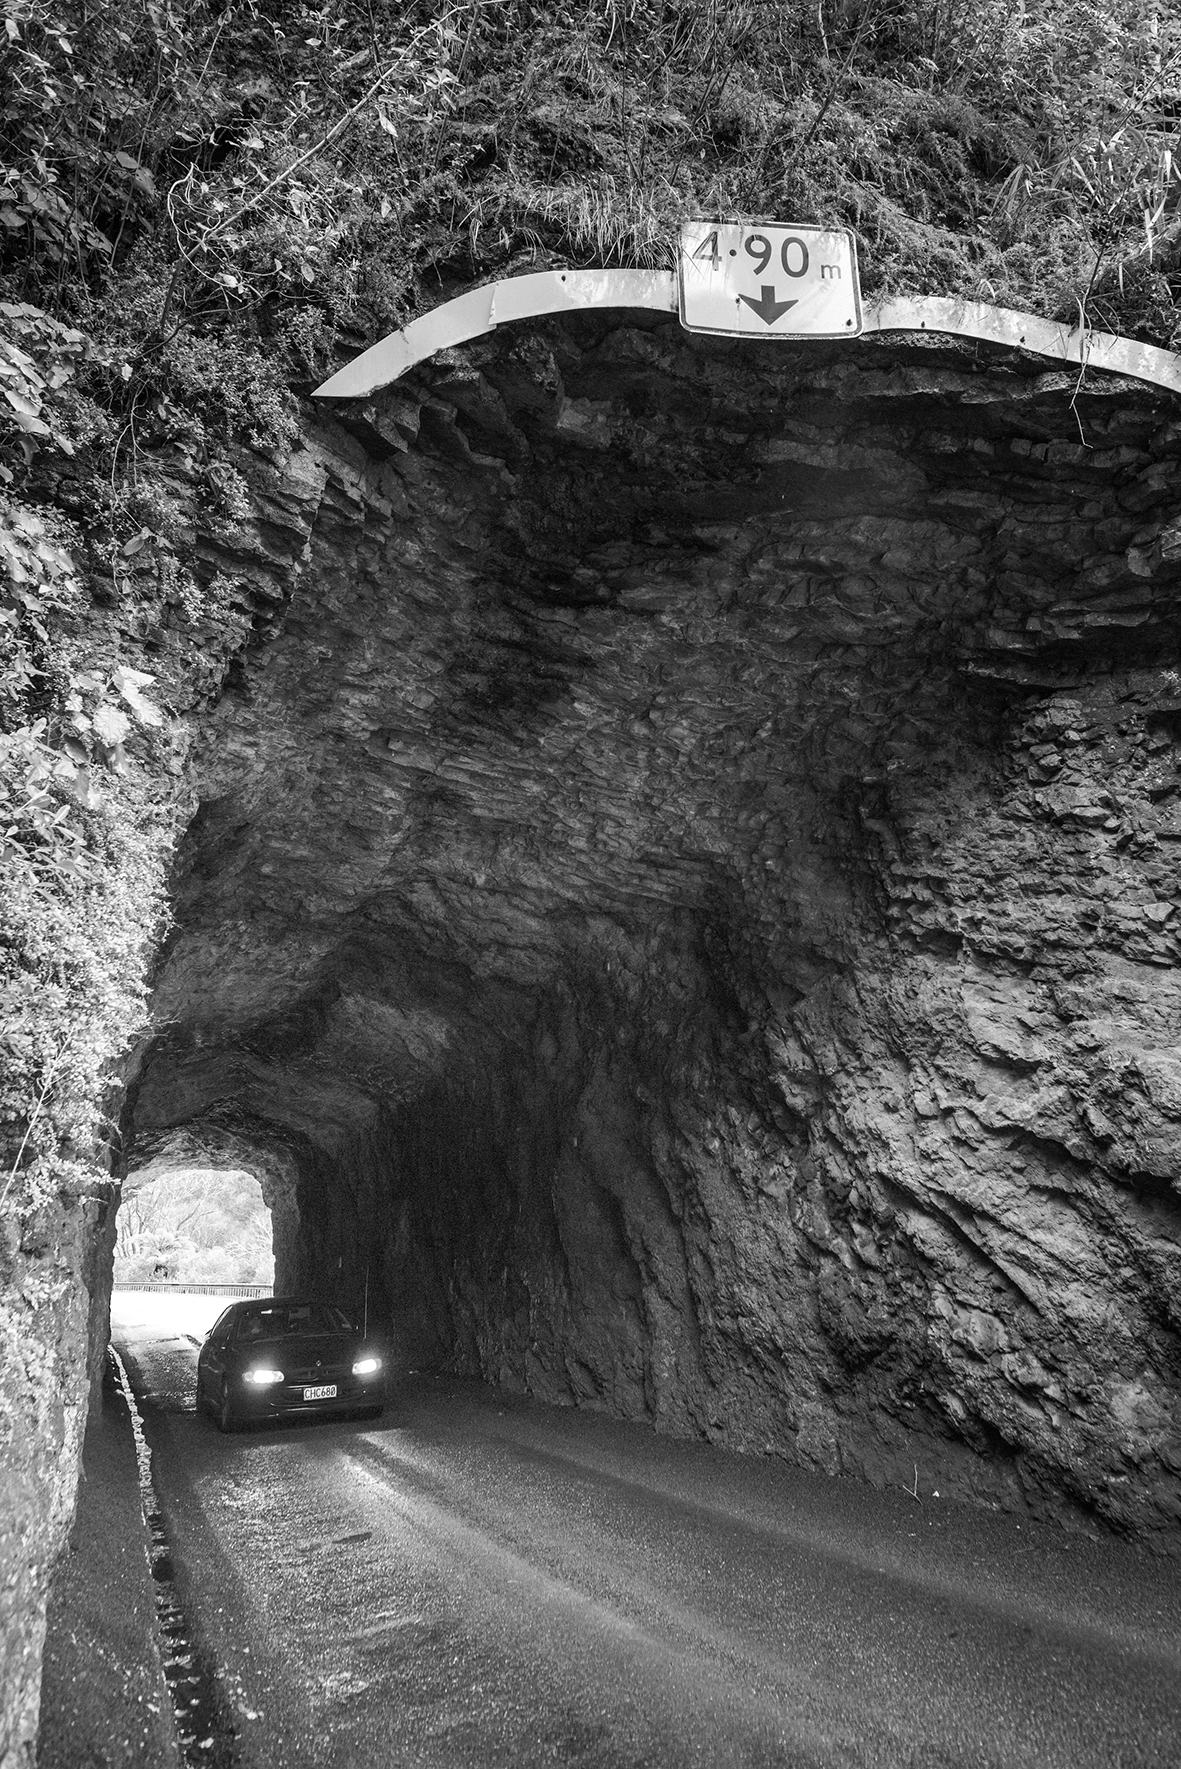 The single-lane Awakino Tunnel is at the eastern end of the Awakino Gorge. It was opened to traffic in 1923. Source: NZ Transport Agency